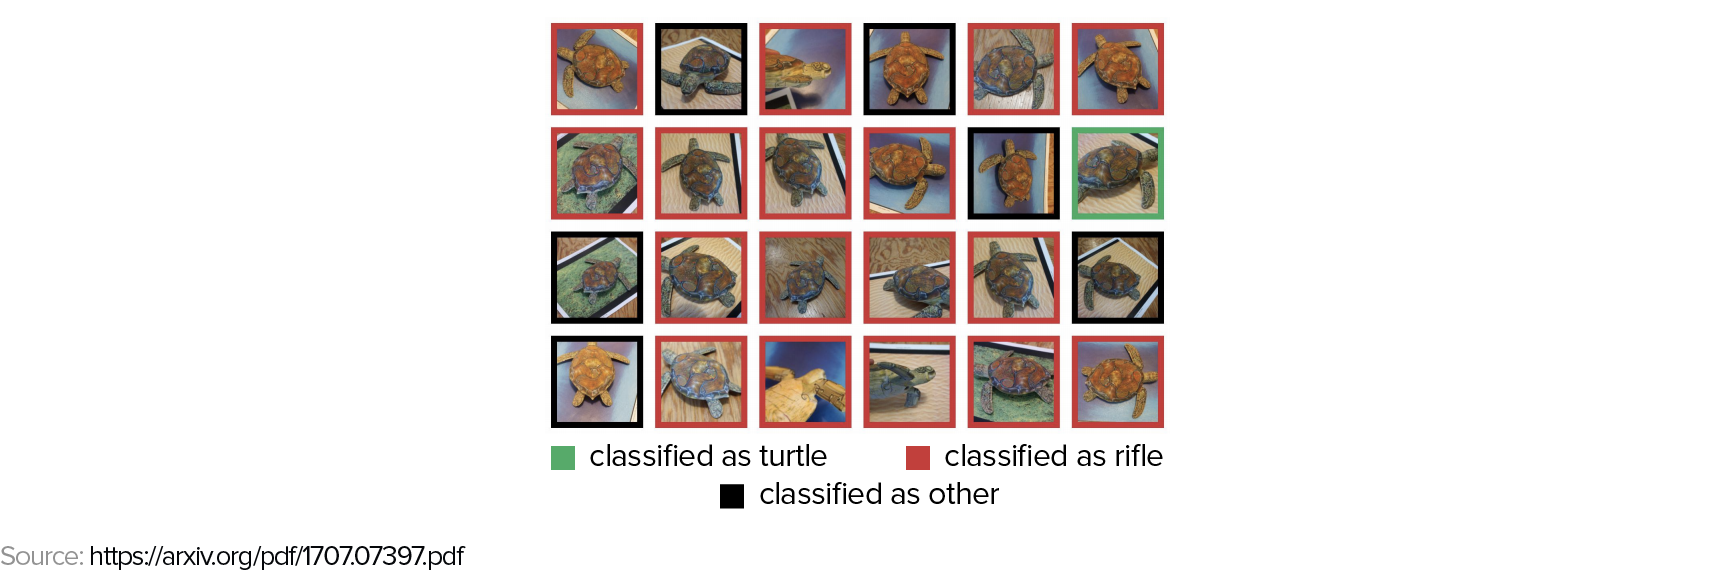 An image showing a grid of turtle images, some of which are classified correctly as turtles, some of which are classified as rifles, and a few of which are classified as other